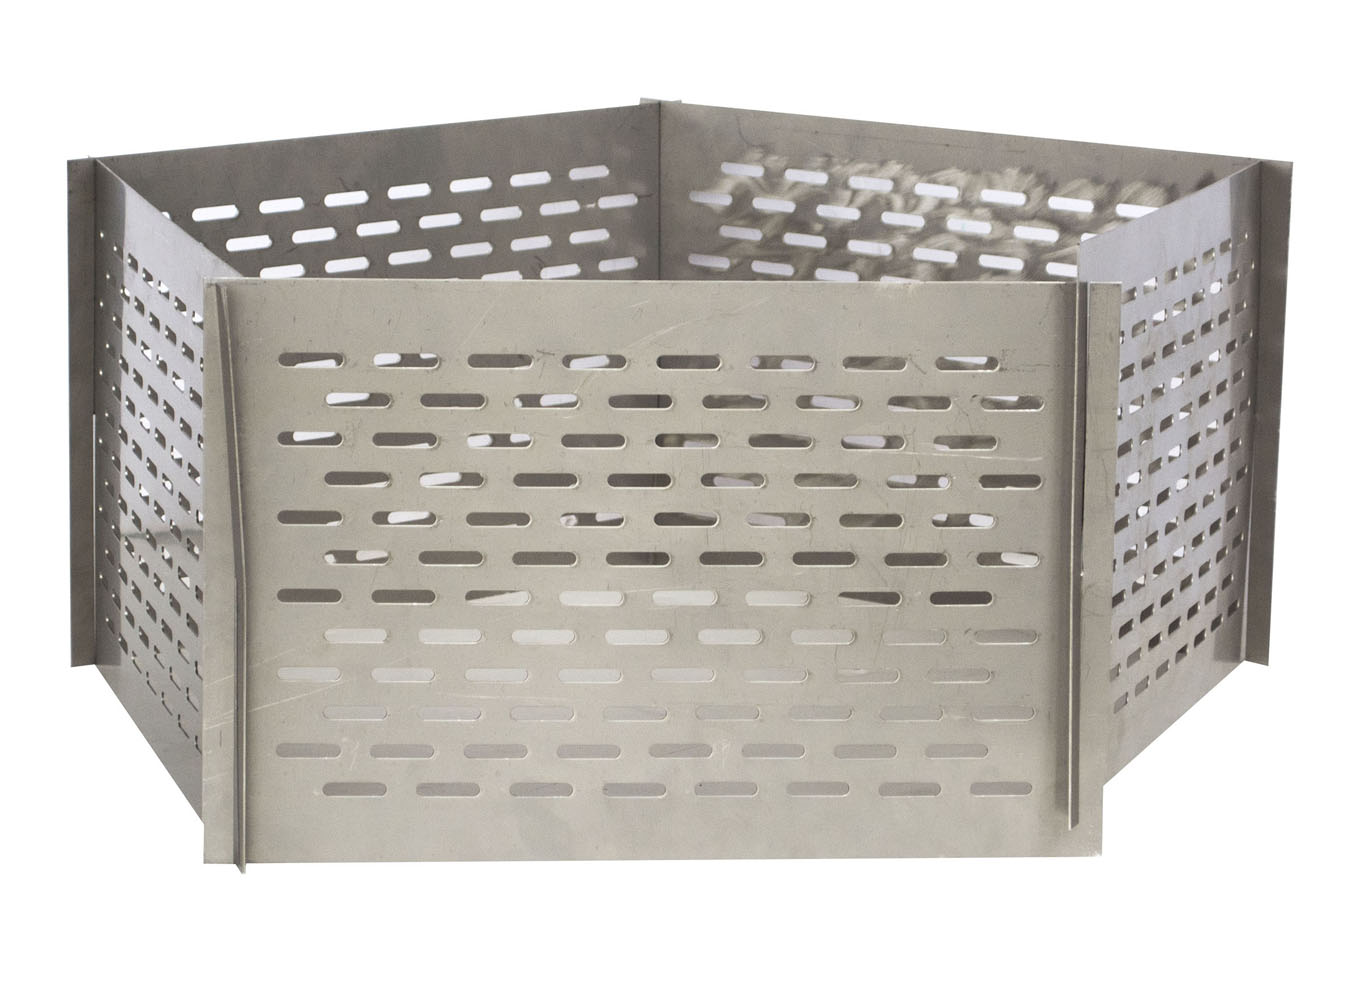 Portable 5 Panel Interlocking Stainless Steel Fire Pit